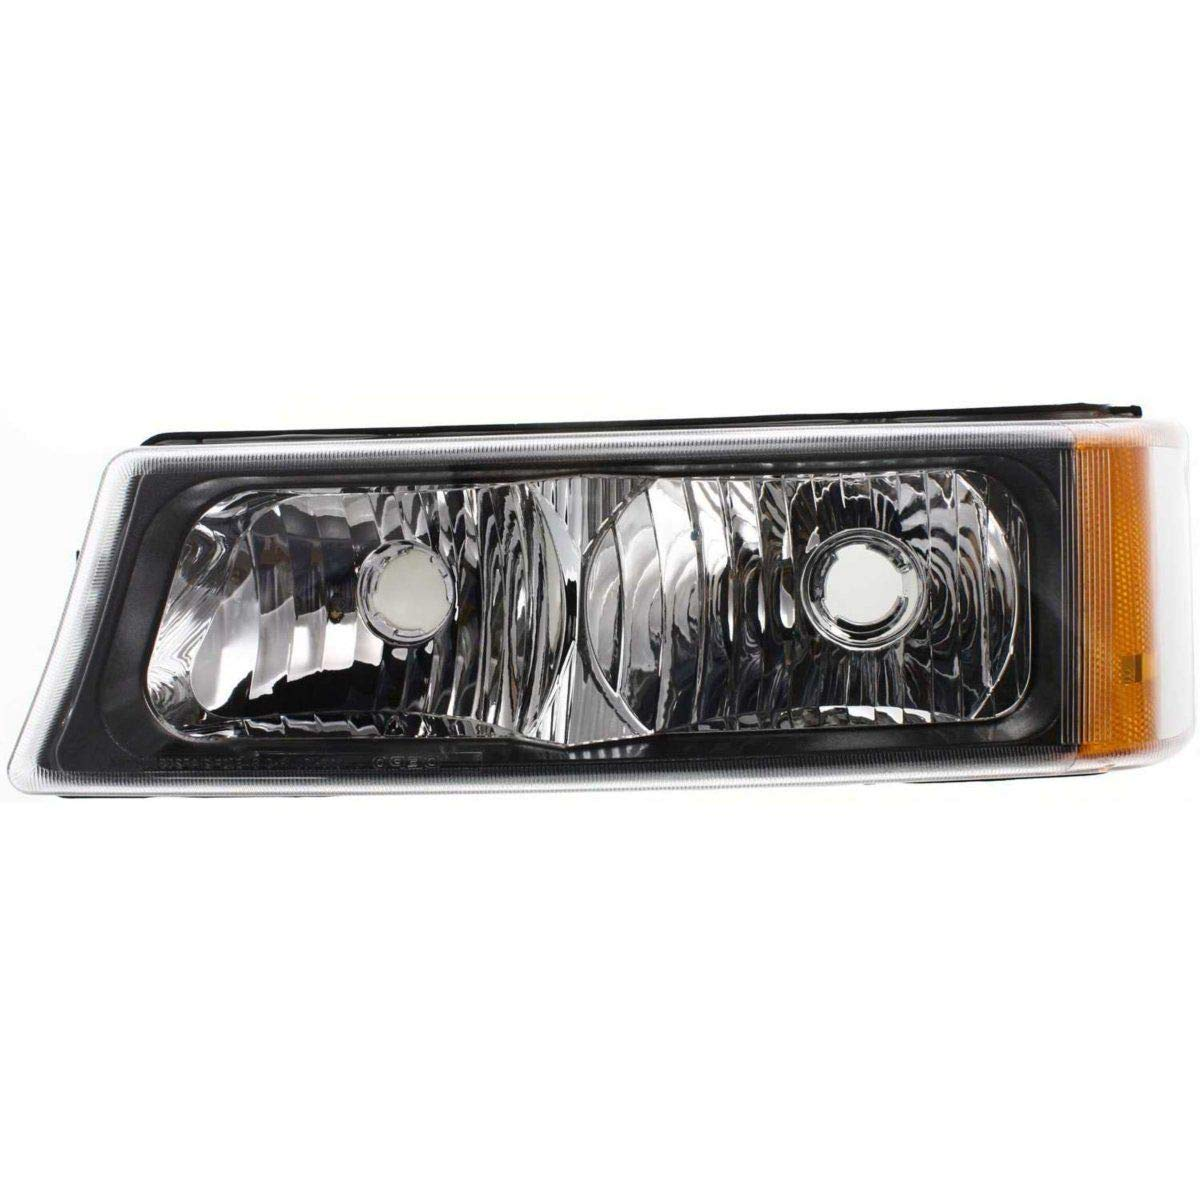 2003-2006 Chevrolet Silverado Lens And Housing GM2520185c 15199556 Capa New Left Driver Side Signal Lamp For 2003-2006 Chevrolet Avalanche